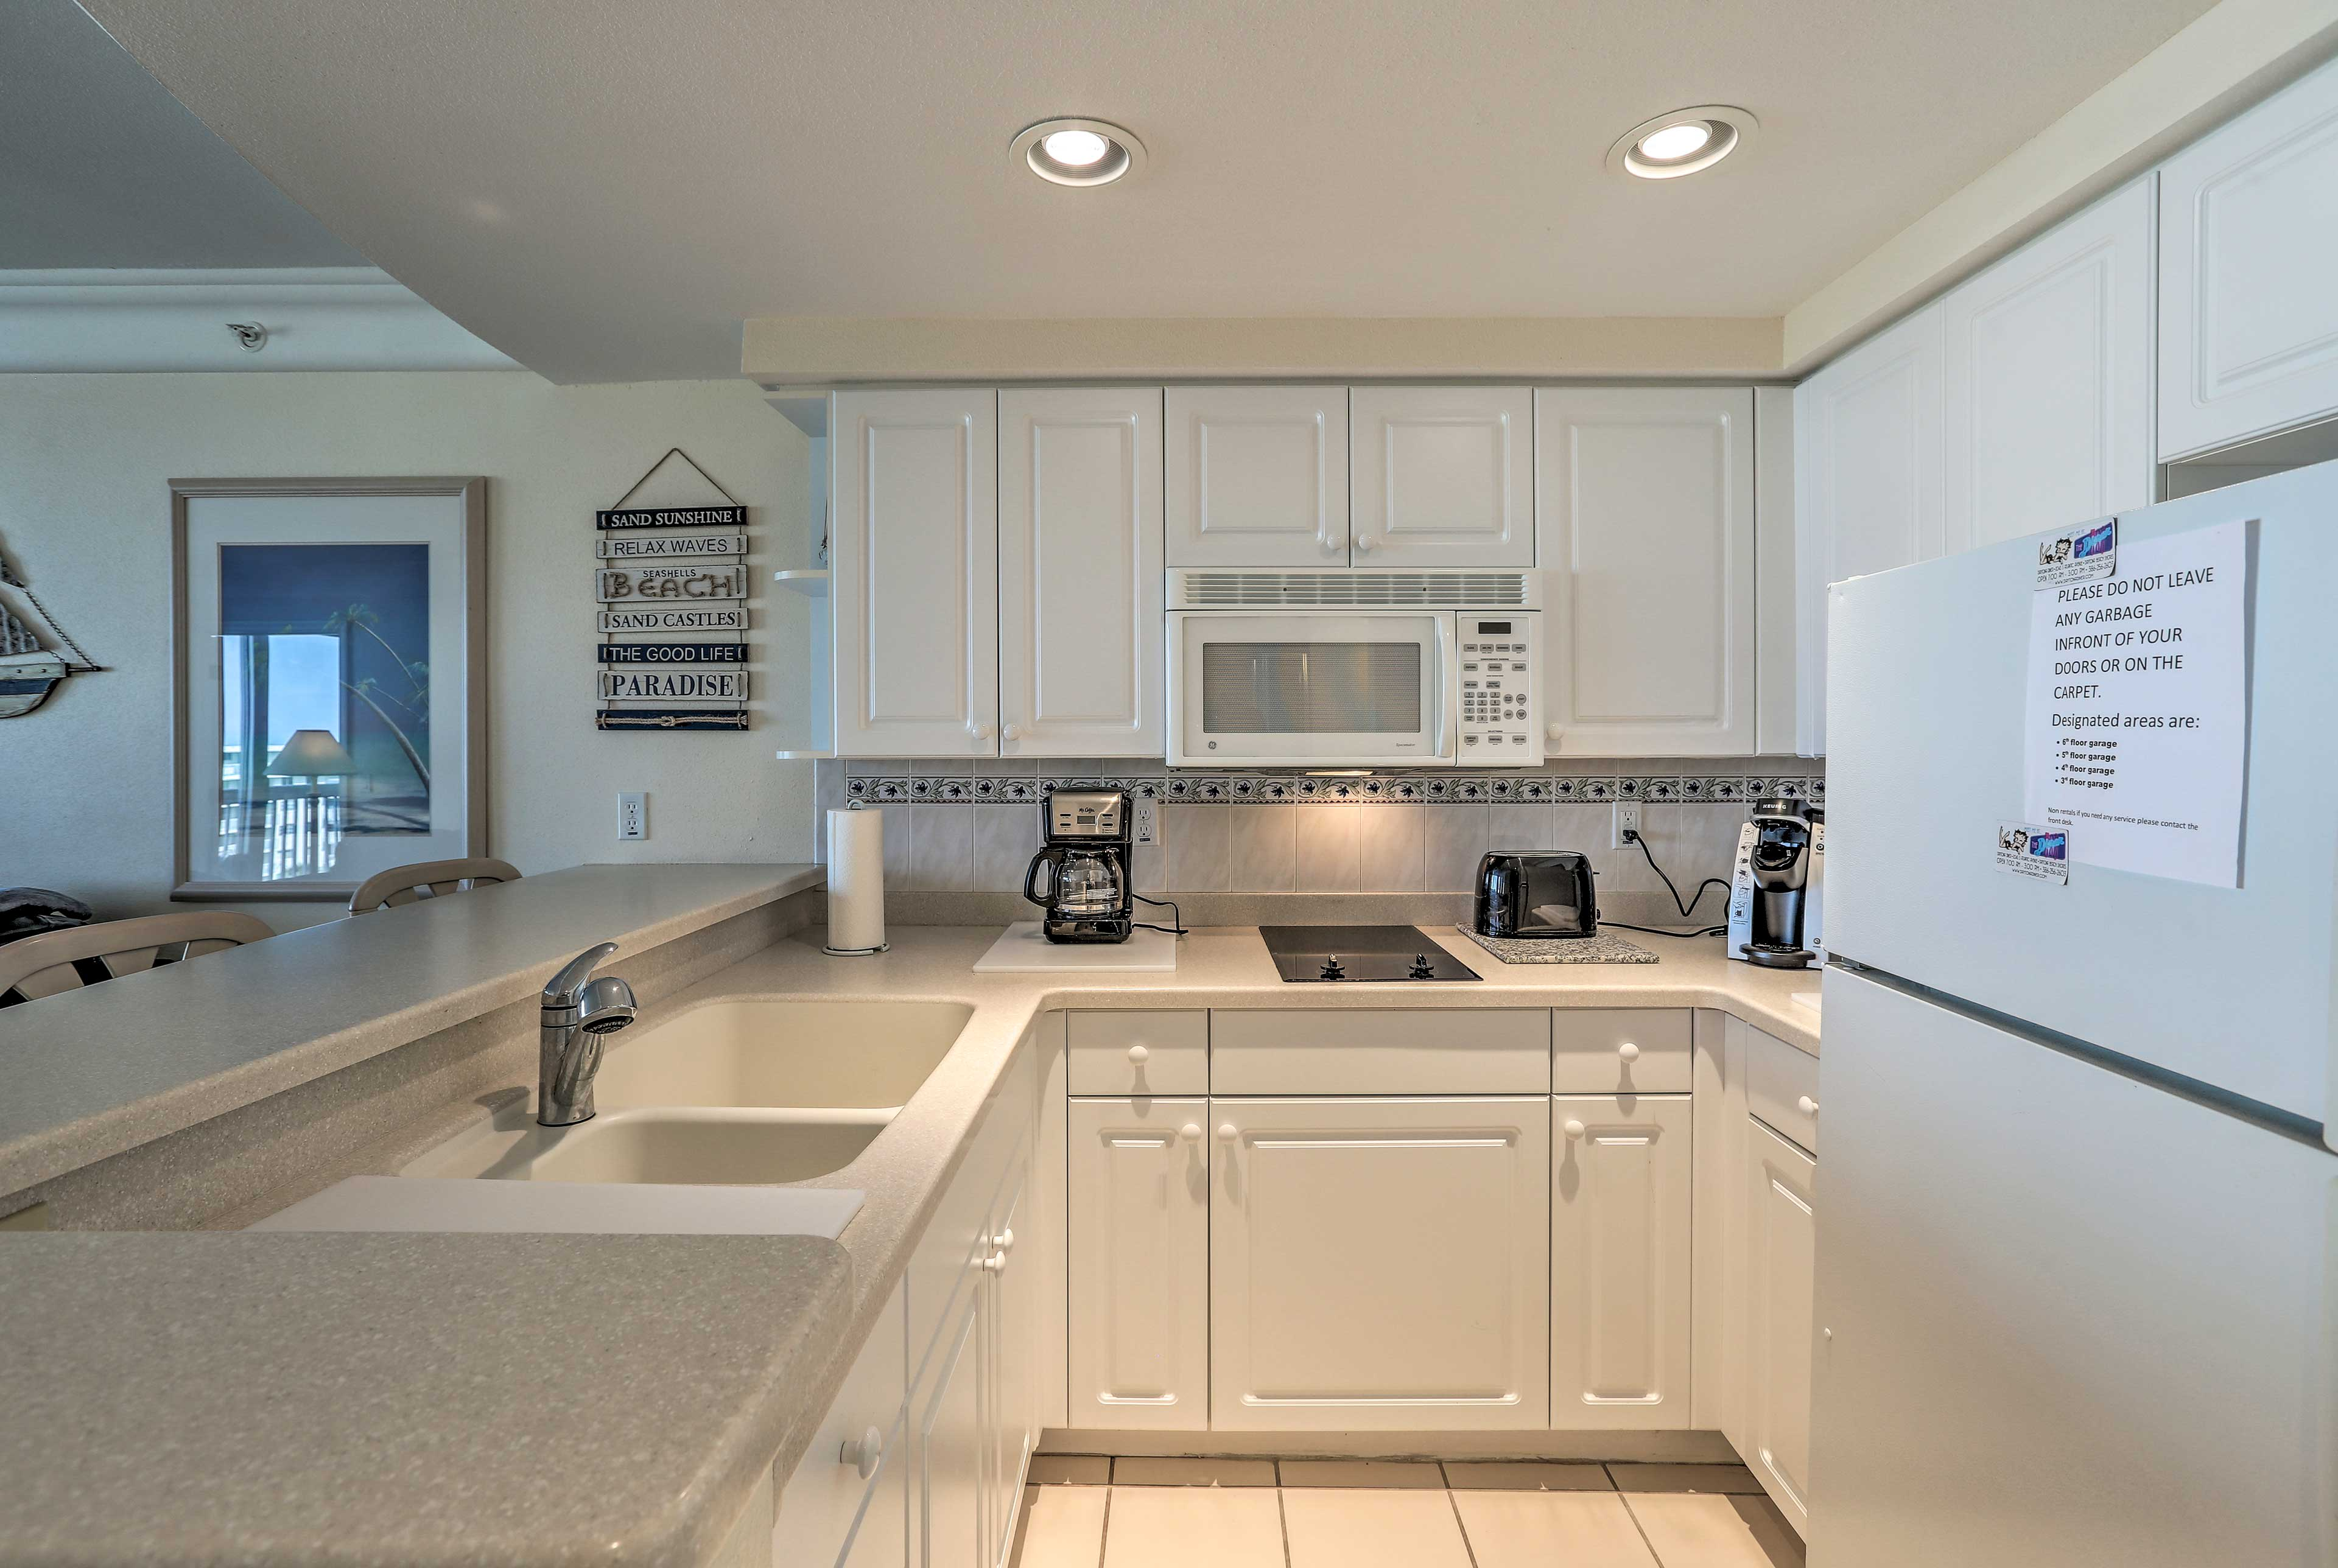 Cook your favorite seafood meals in the well-equipped kitchenette.